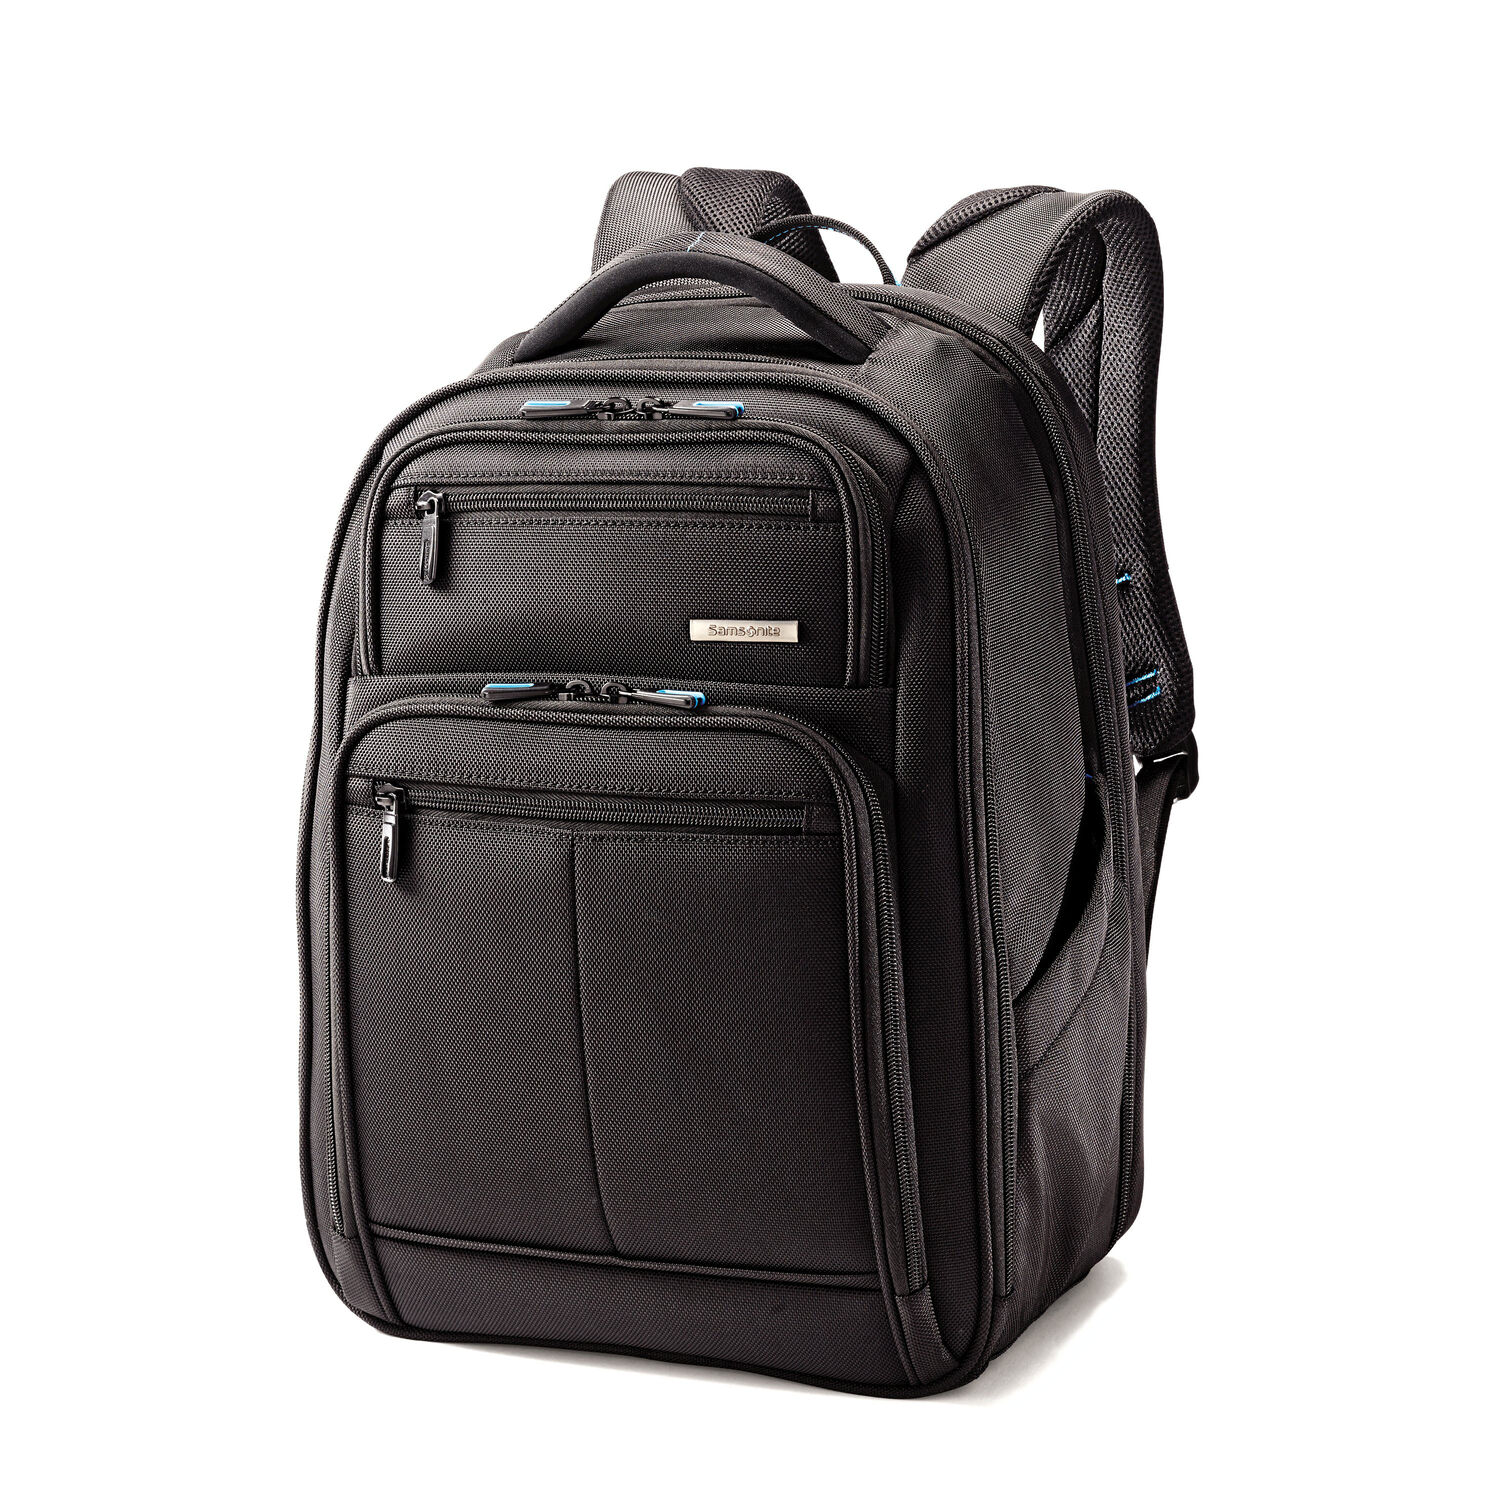 samsonite novex perfect fit laptop backpack. Black Bedroom Furniture Sets. Home Design Ideas